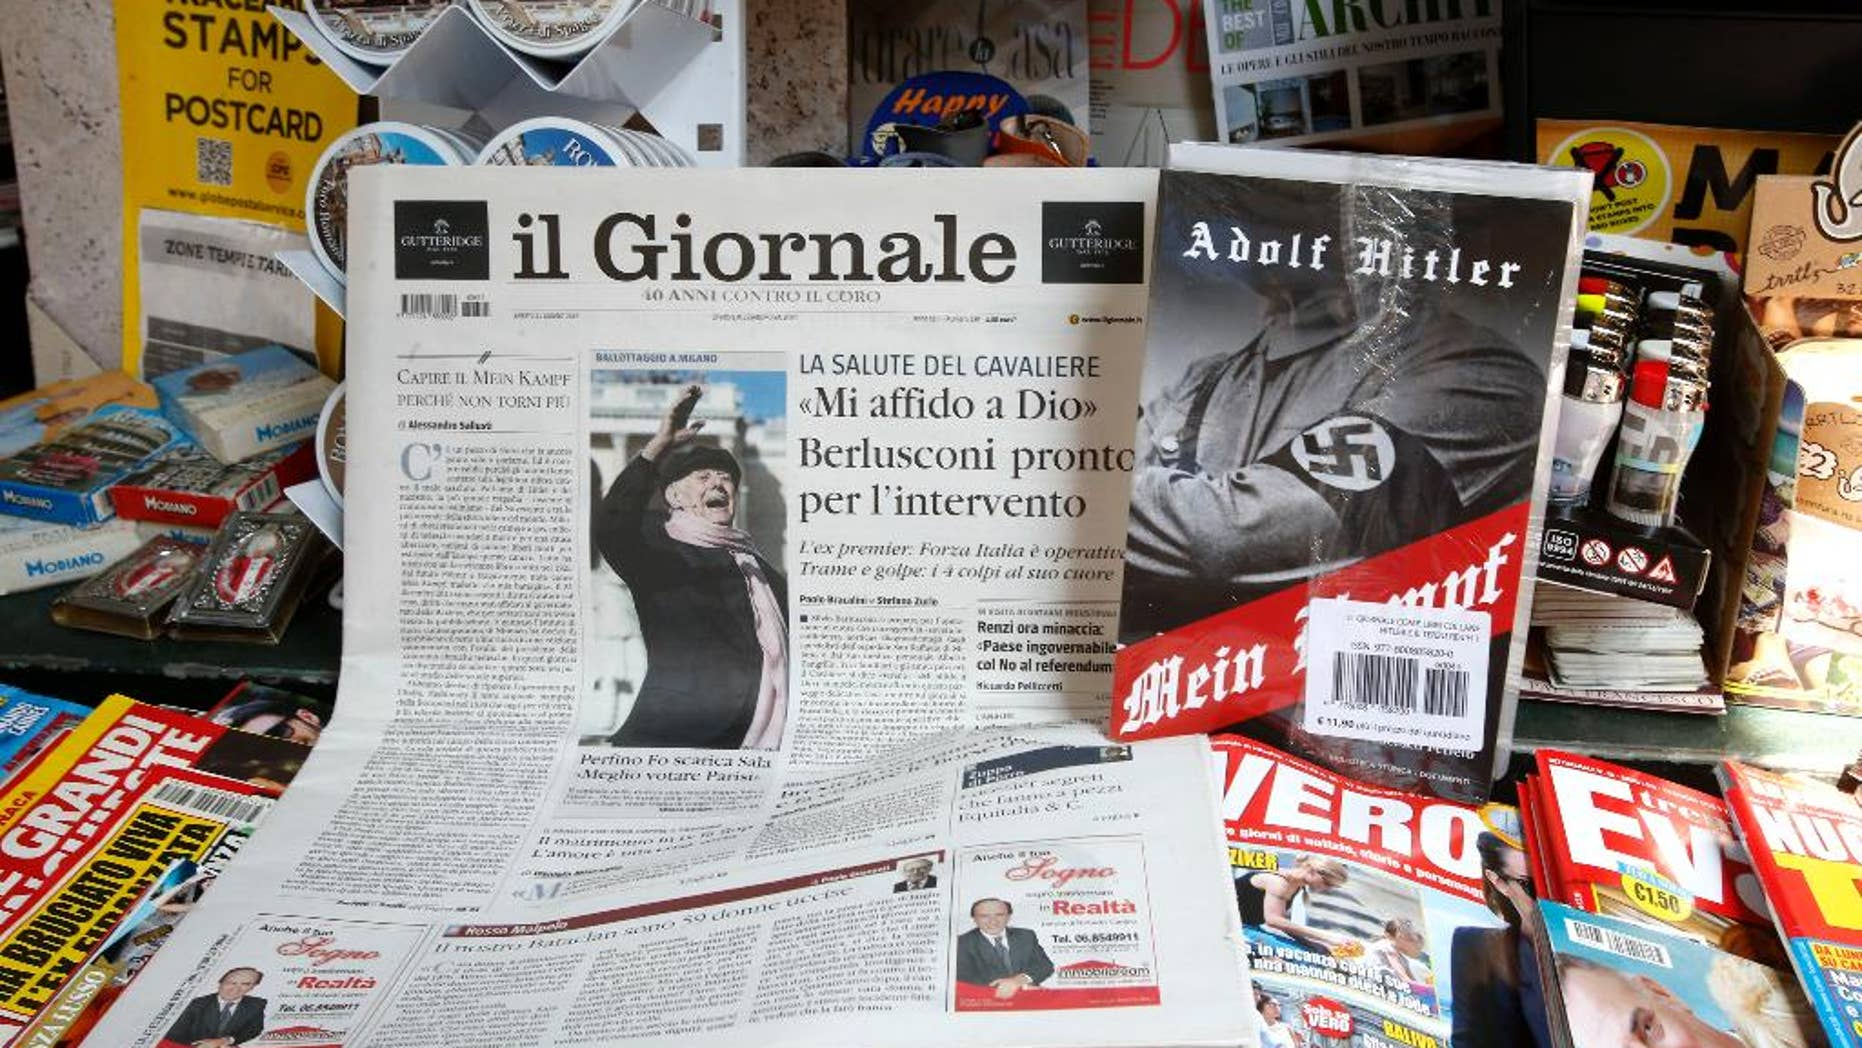 """Il Giornale newspaper is seen on sale in a newsstand with Hitler's """"Mein Kampf"""", in Rome Saturday, June 11, 2016. The conservative Milan daily Il Giornale  has published Hitler's political manifesto ''Mein Kampf,'' angering Italy's premier and the tiny Jewish community. (AP Photo/Fabio Frustaci)"""